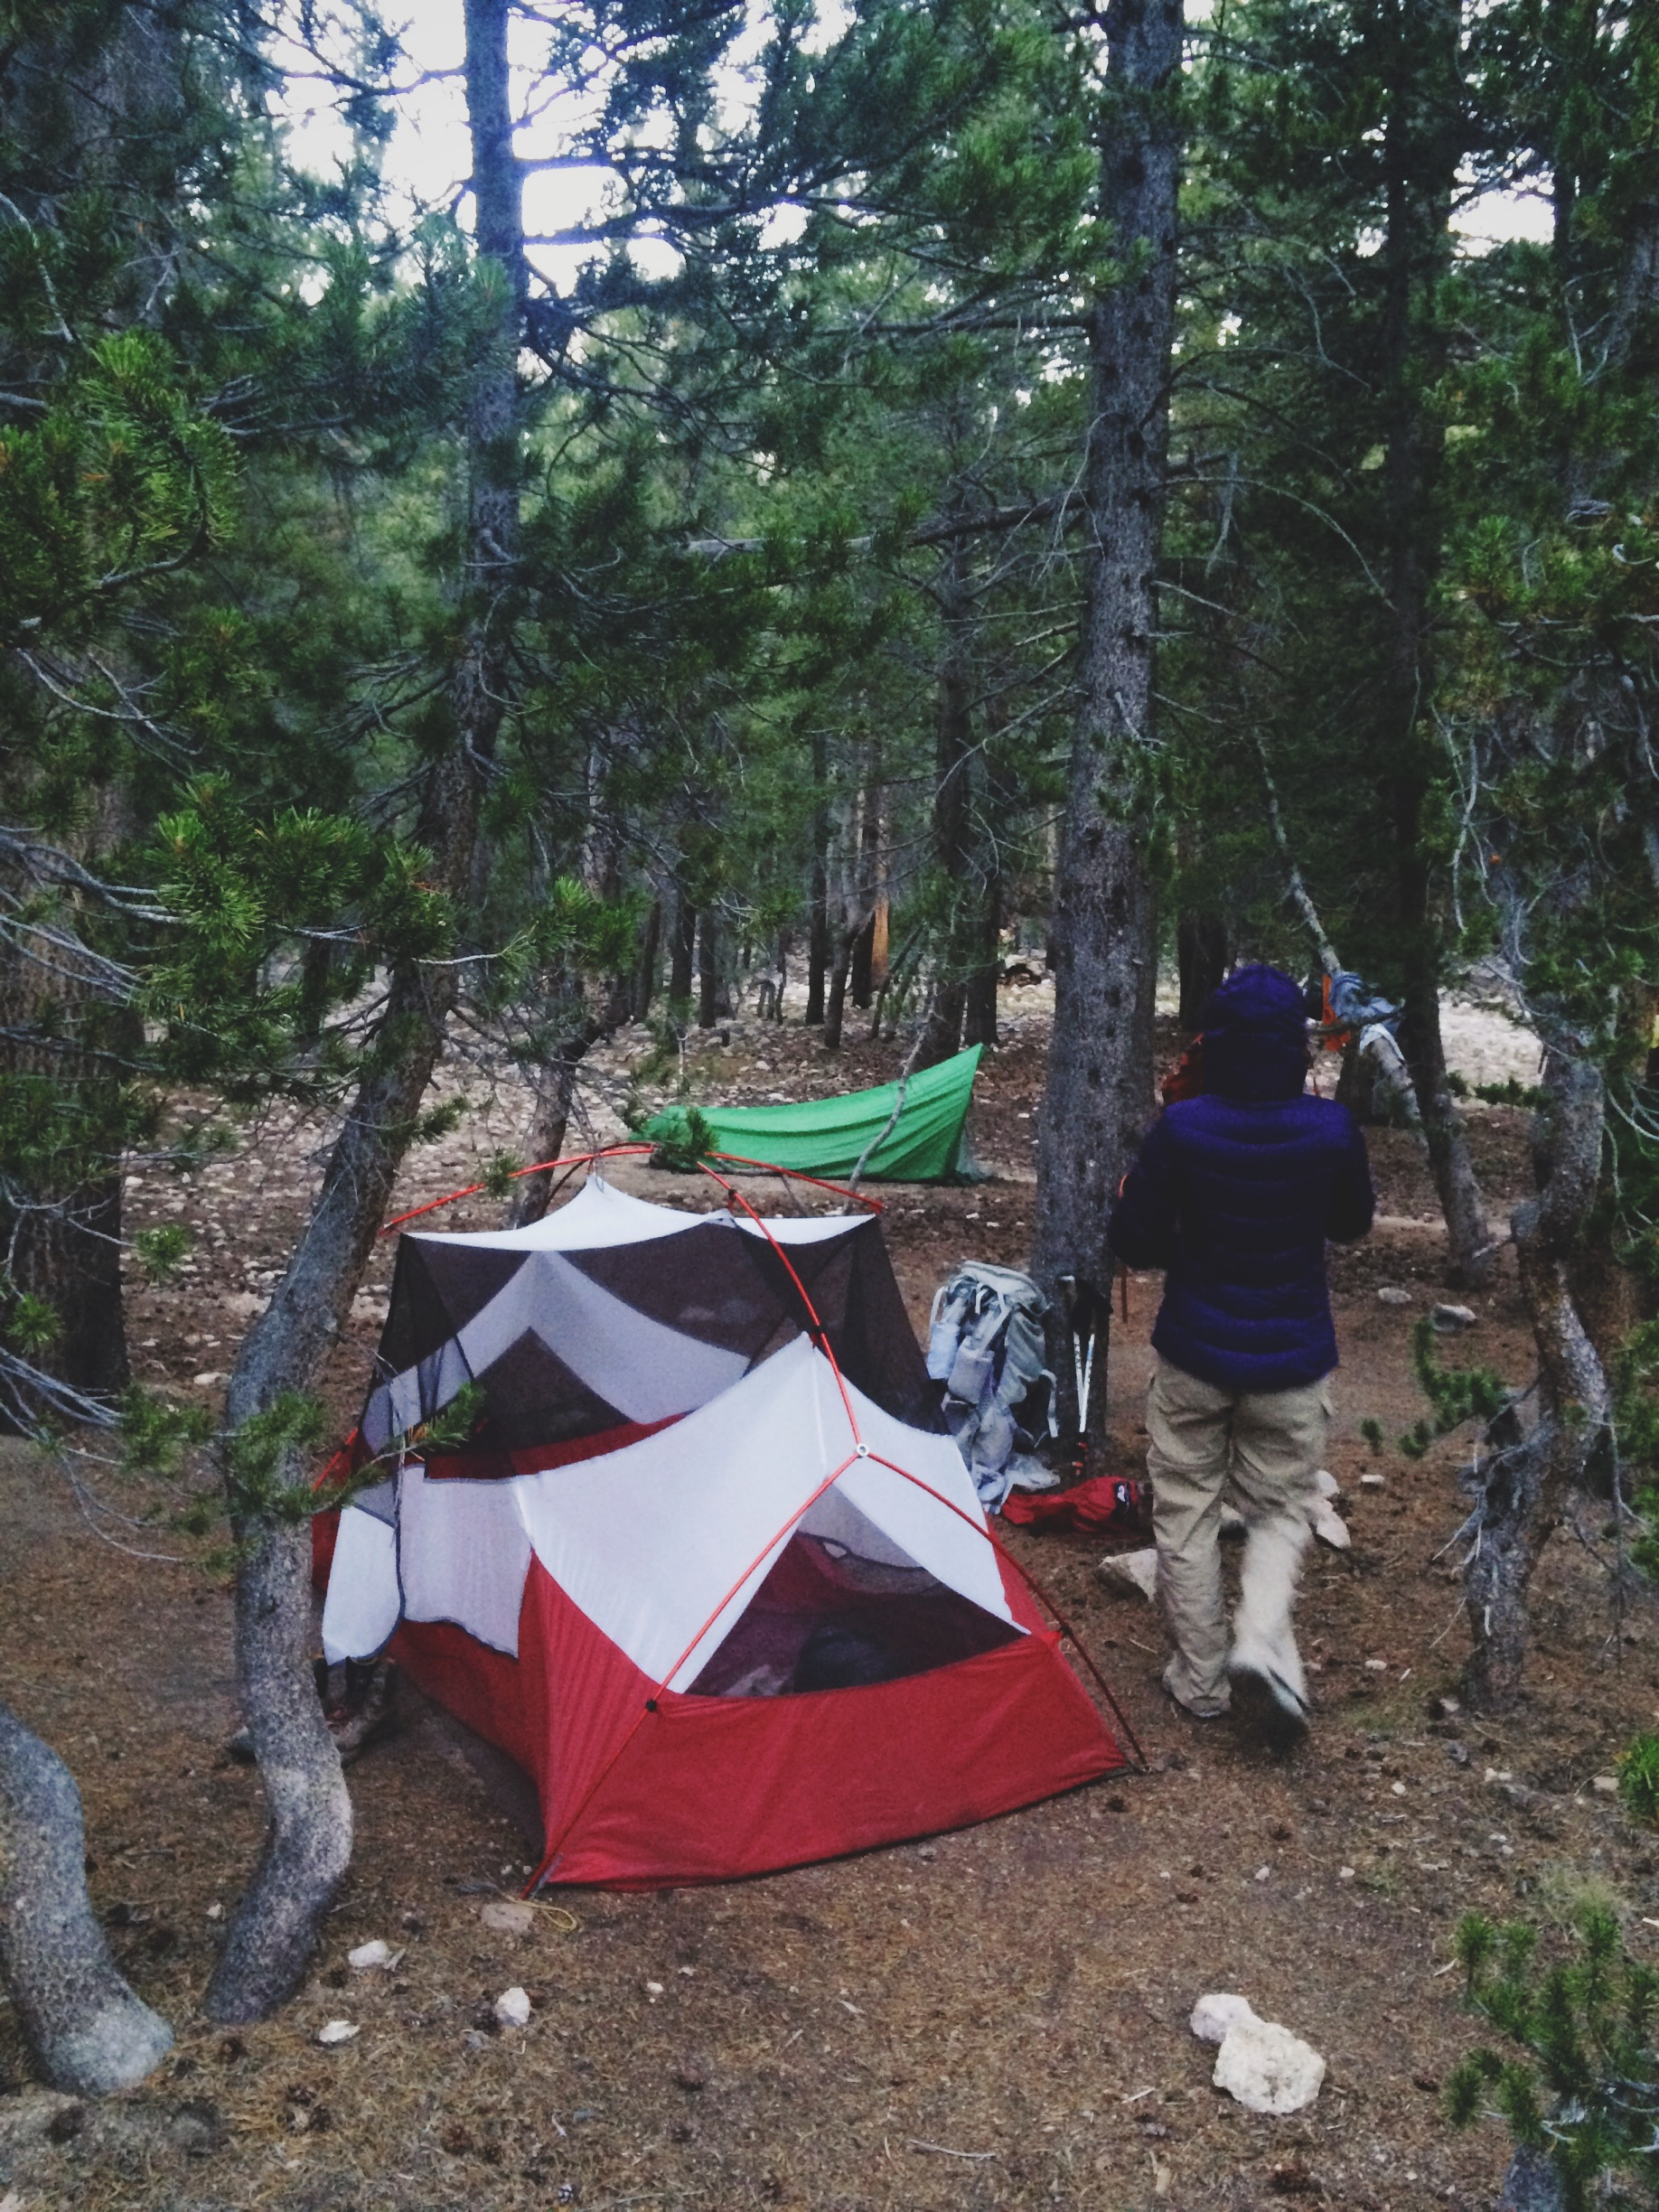 Day 15: camped at Lower Vidette Meadow.